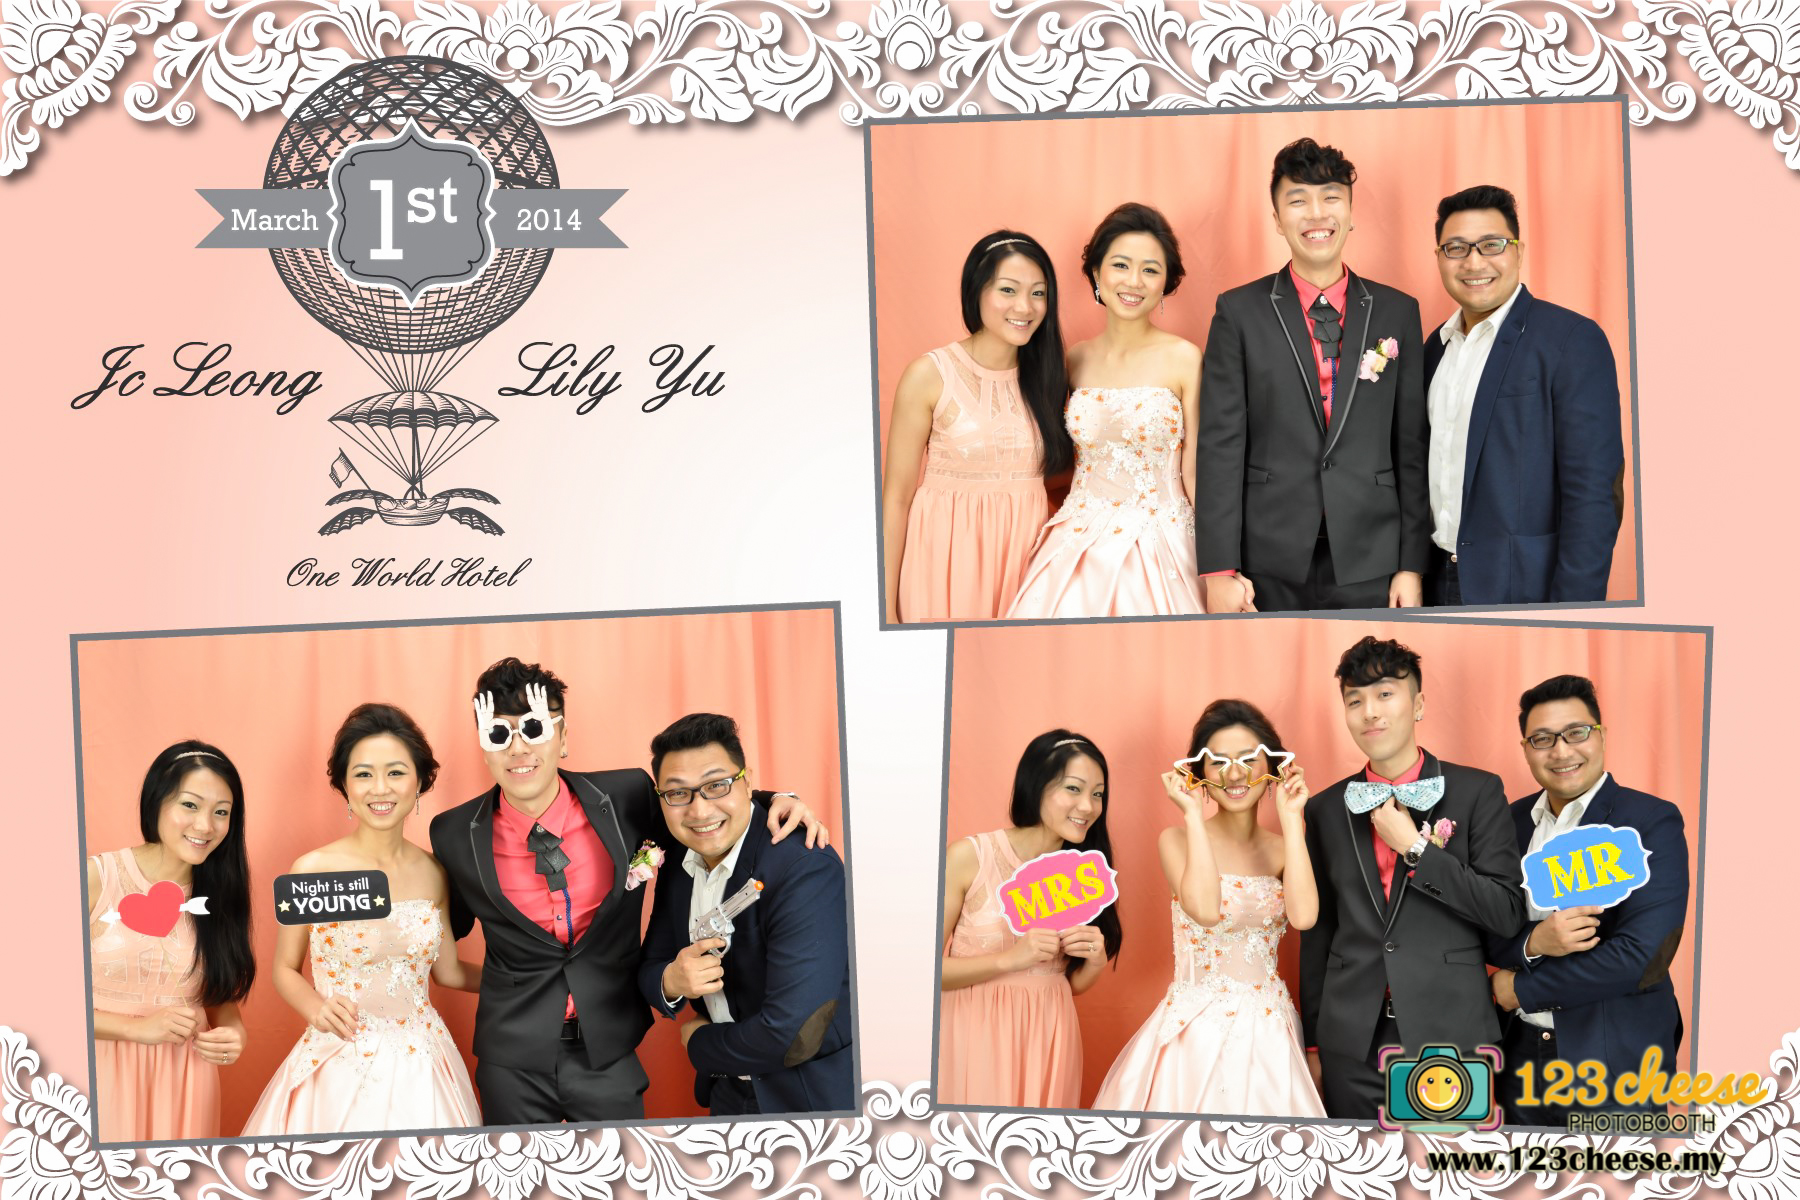 Wedding Photobooth With Creative Photo Layout Design 100 Customer